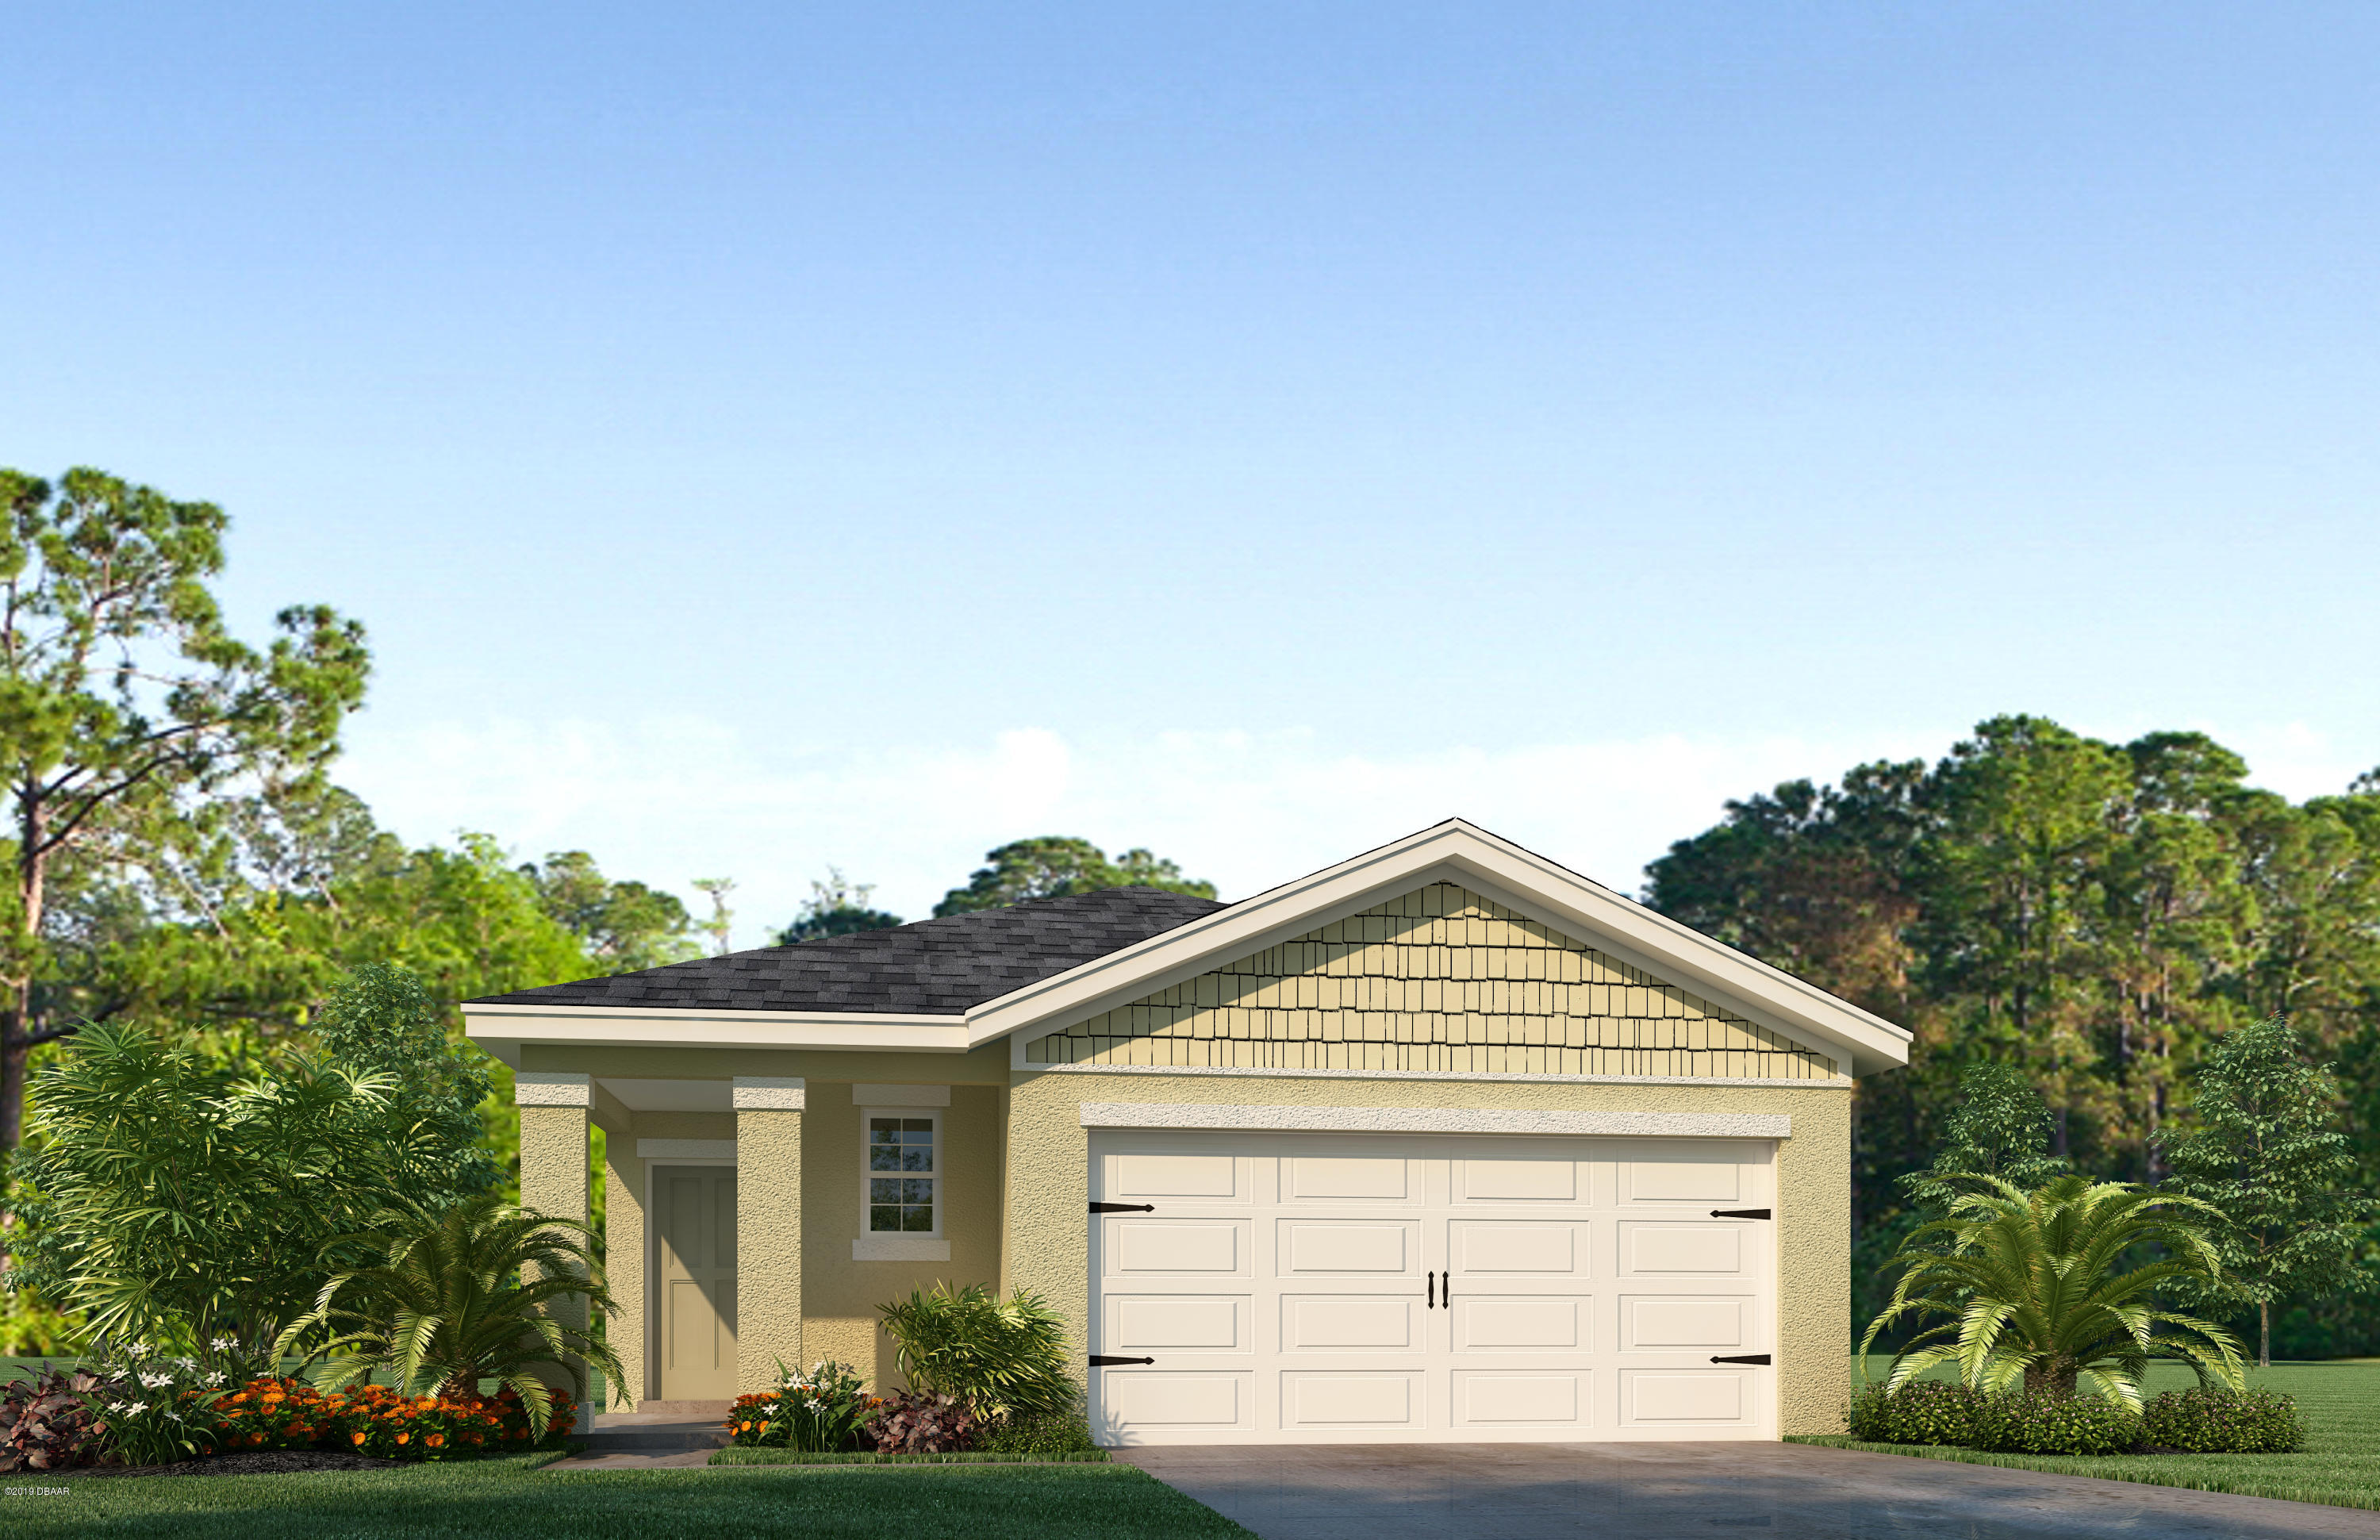 2915 Blue Shores Way, New Smyrna Beach, FL 32168